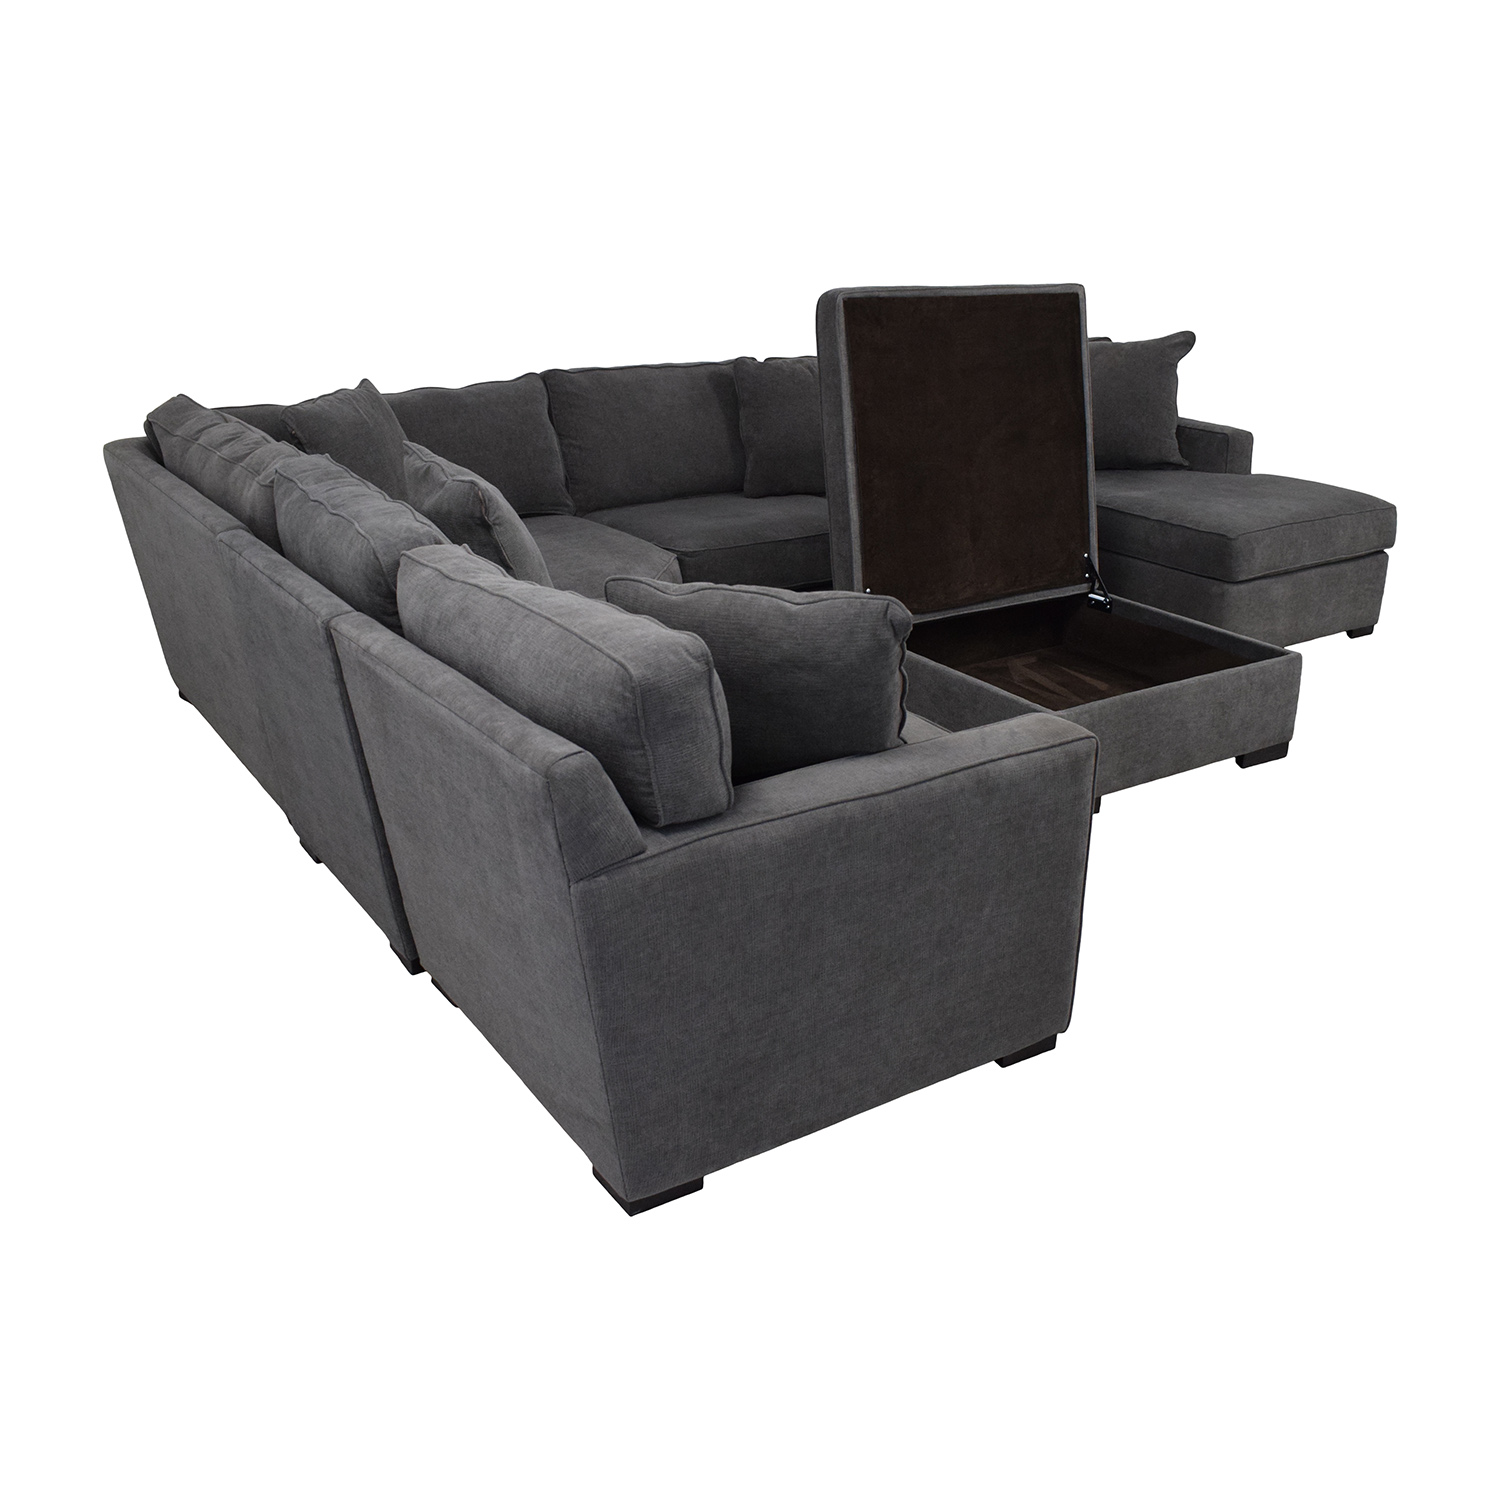 Macy's Macy's Radley Fabric 6-Piece Chaise Sectional Sofa with Corner Piece and Ottoman nyc